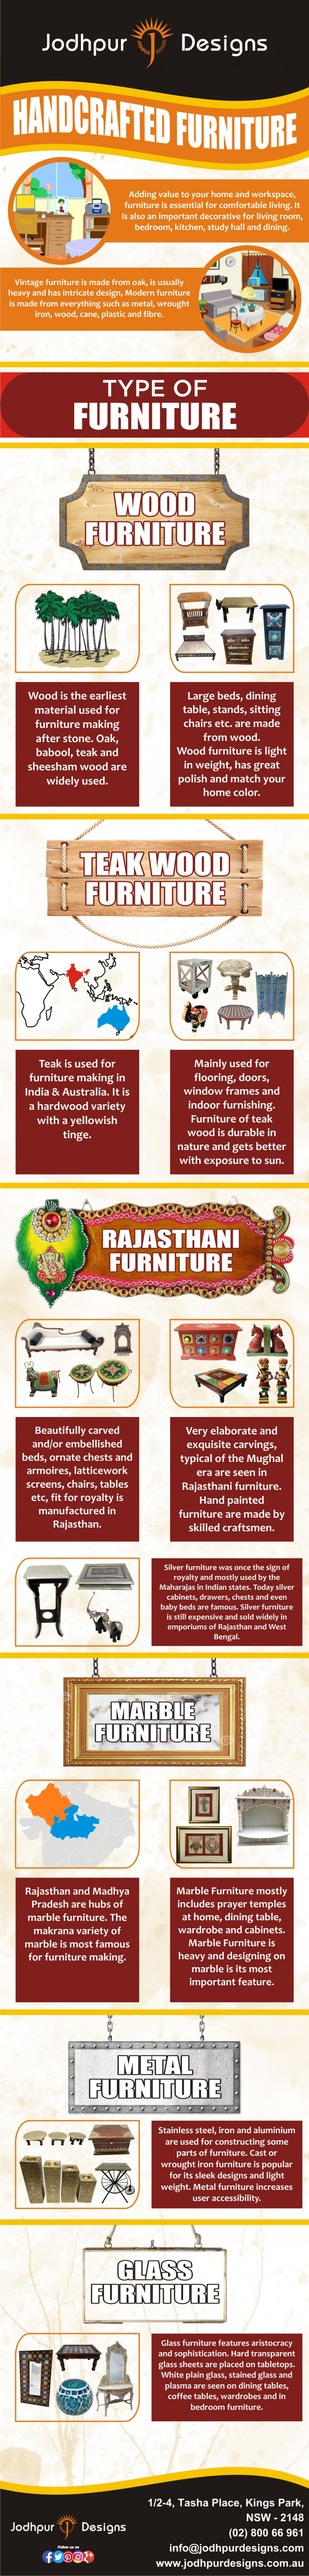 Jodhpur Designs - Hand Crafted Furniture In Sydney Infographic